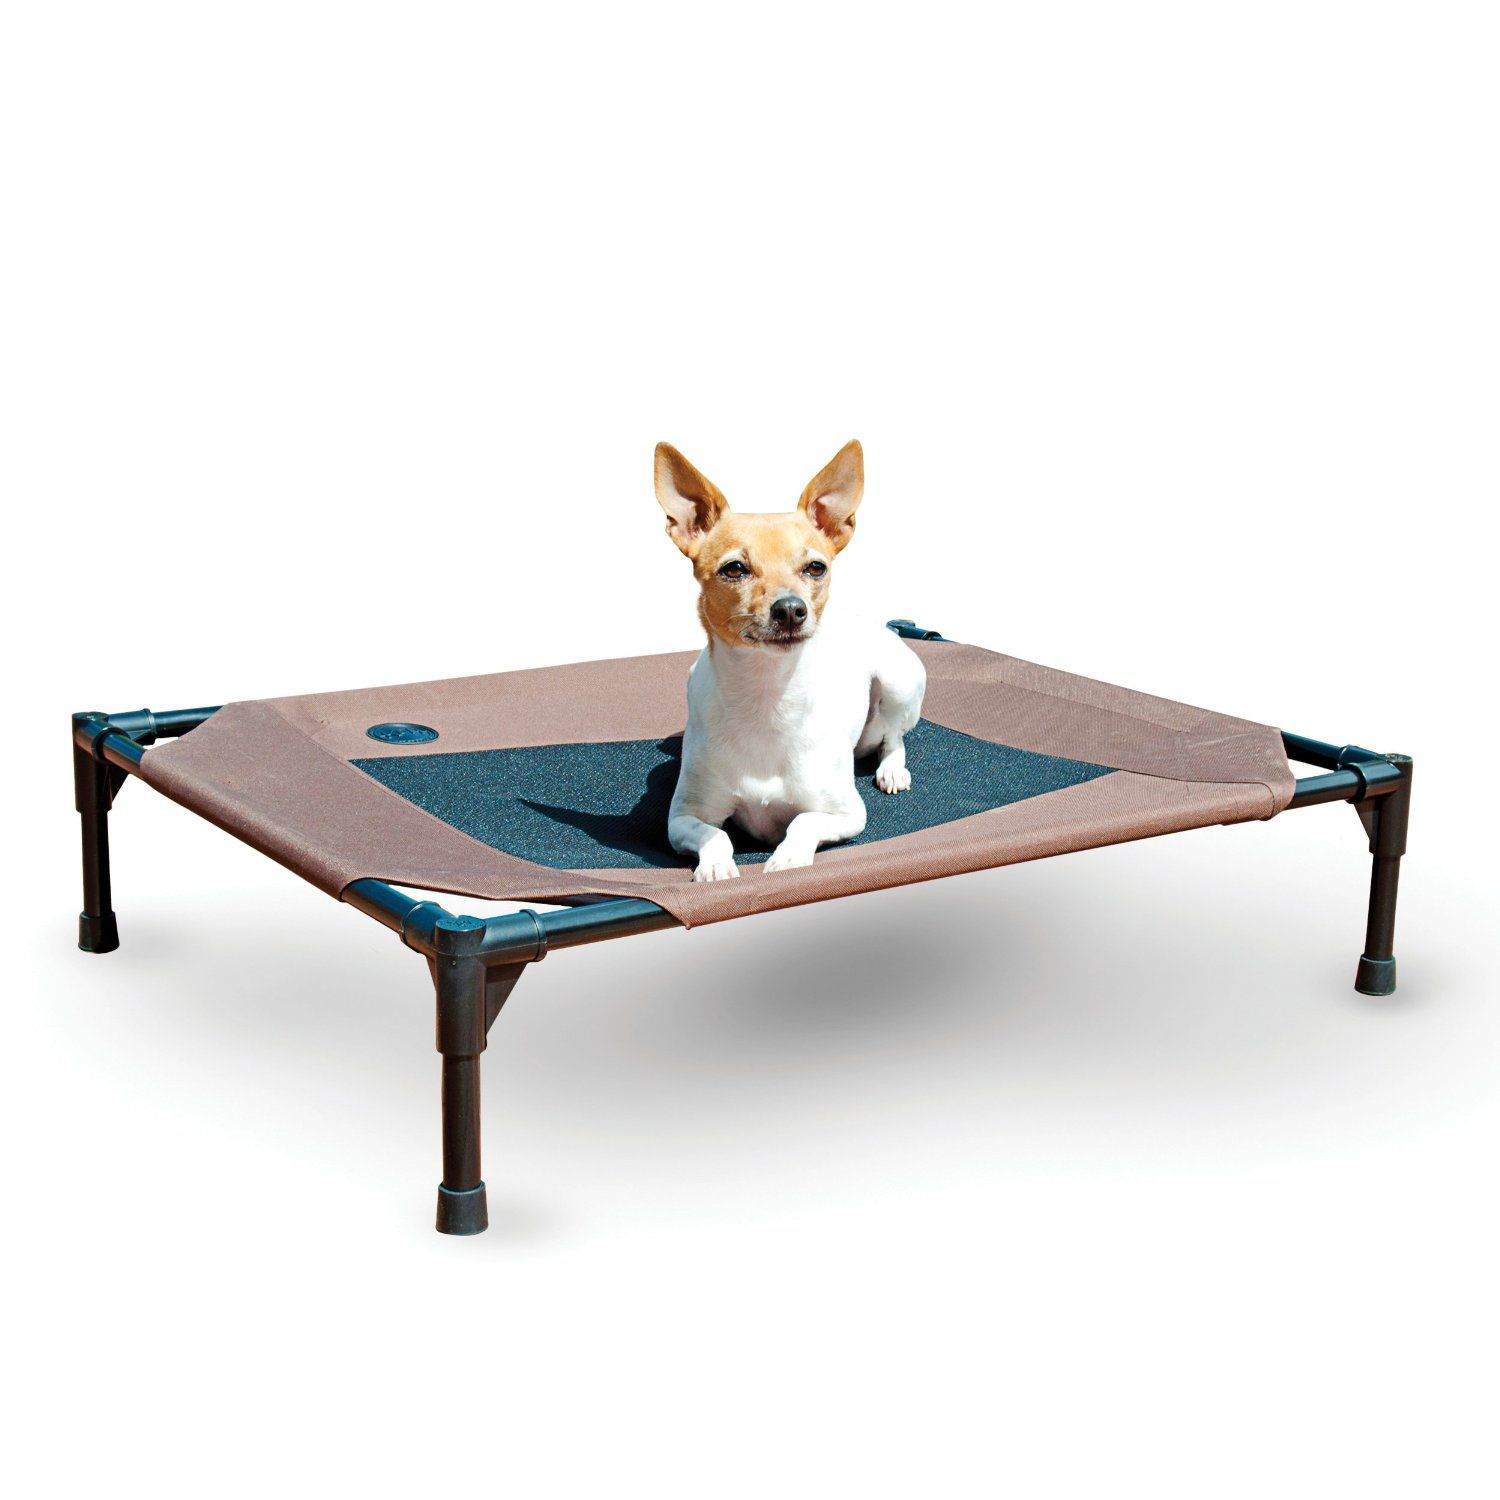 Dog Beds That Sit Off The Floor Canada Elevated Dog Bed Pets Raised Dog Beds